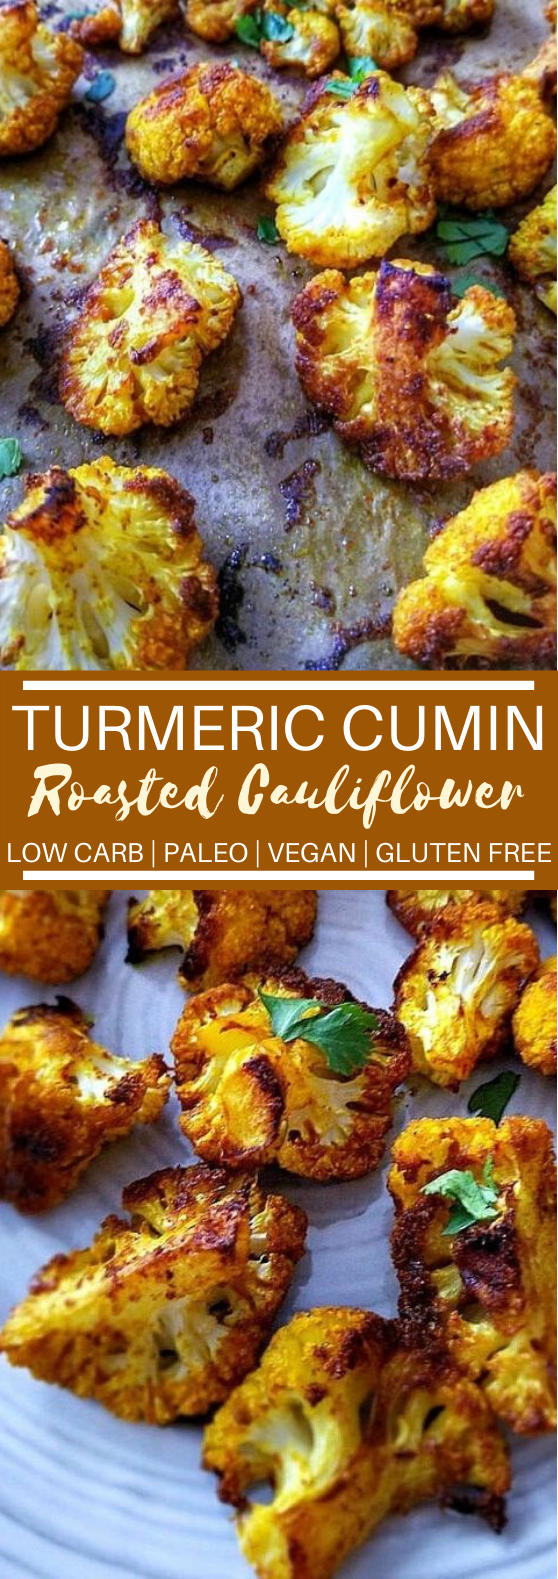 Turmeric Cumin Roasted Cauliflower #vegan #healthy #paleo #sidedish #glutenfree